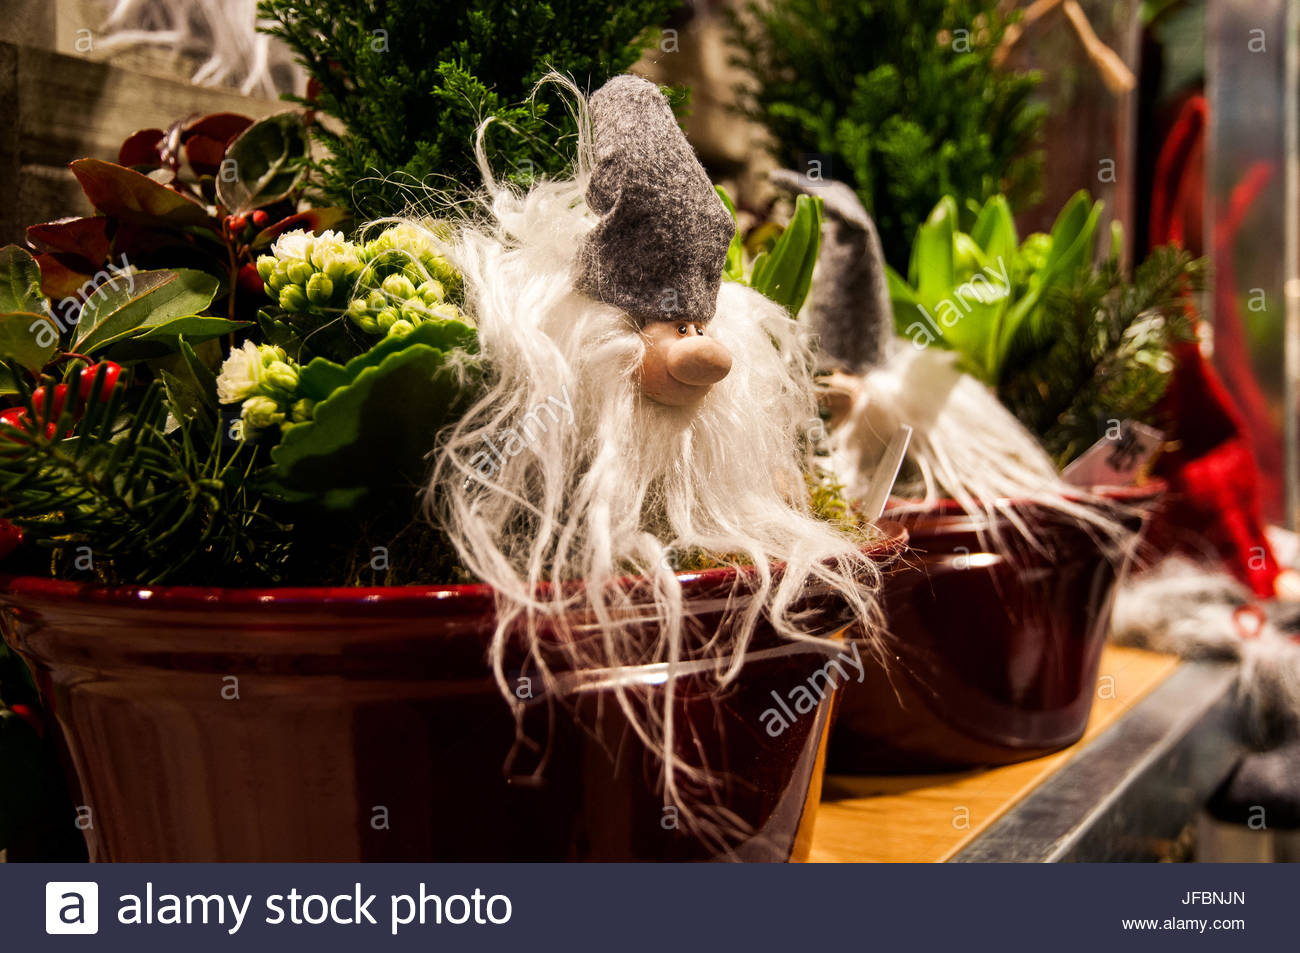 Christmas gnomes and decorations for sale - Stock Image